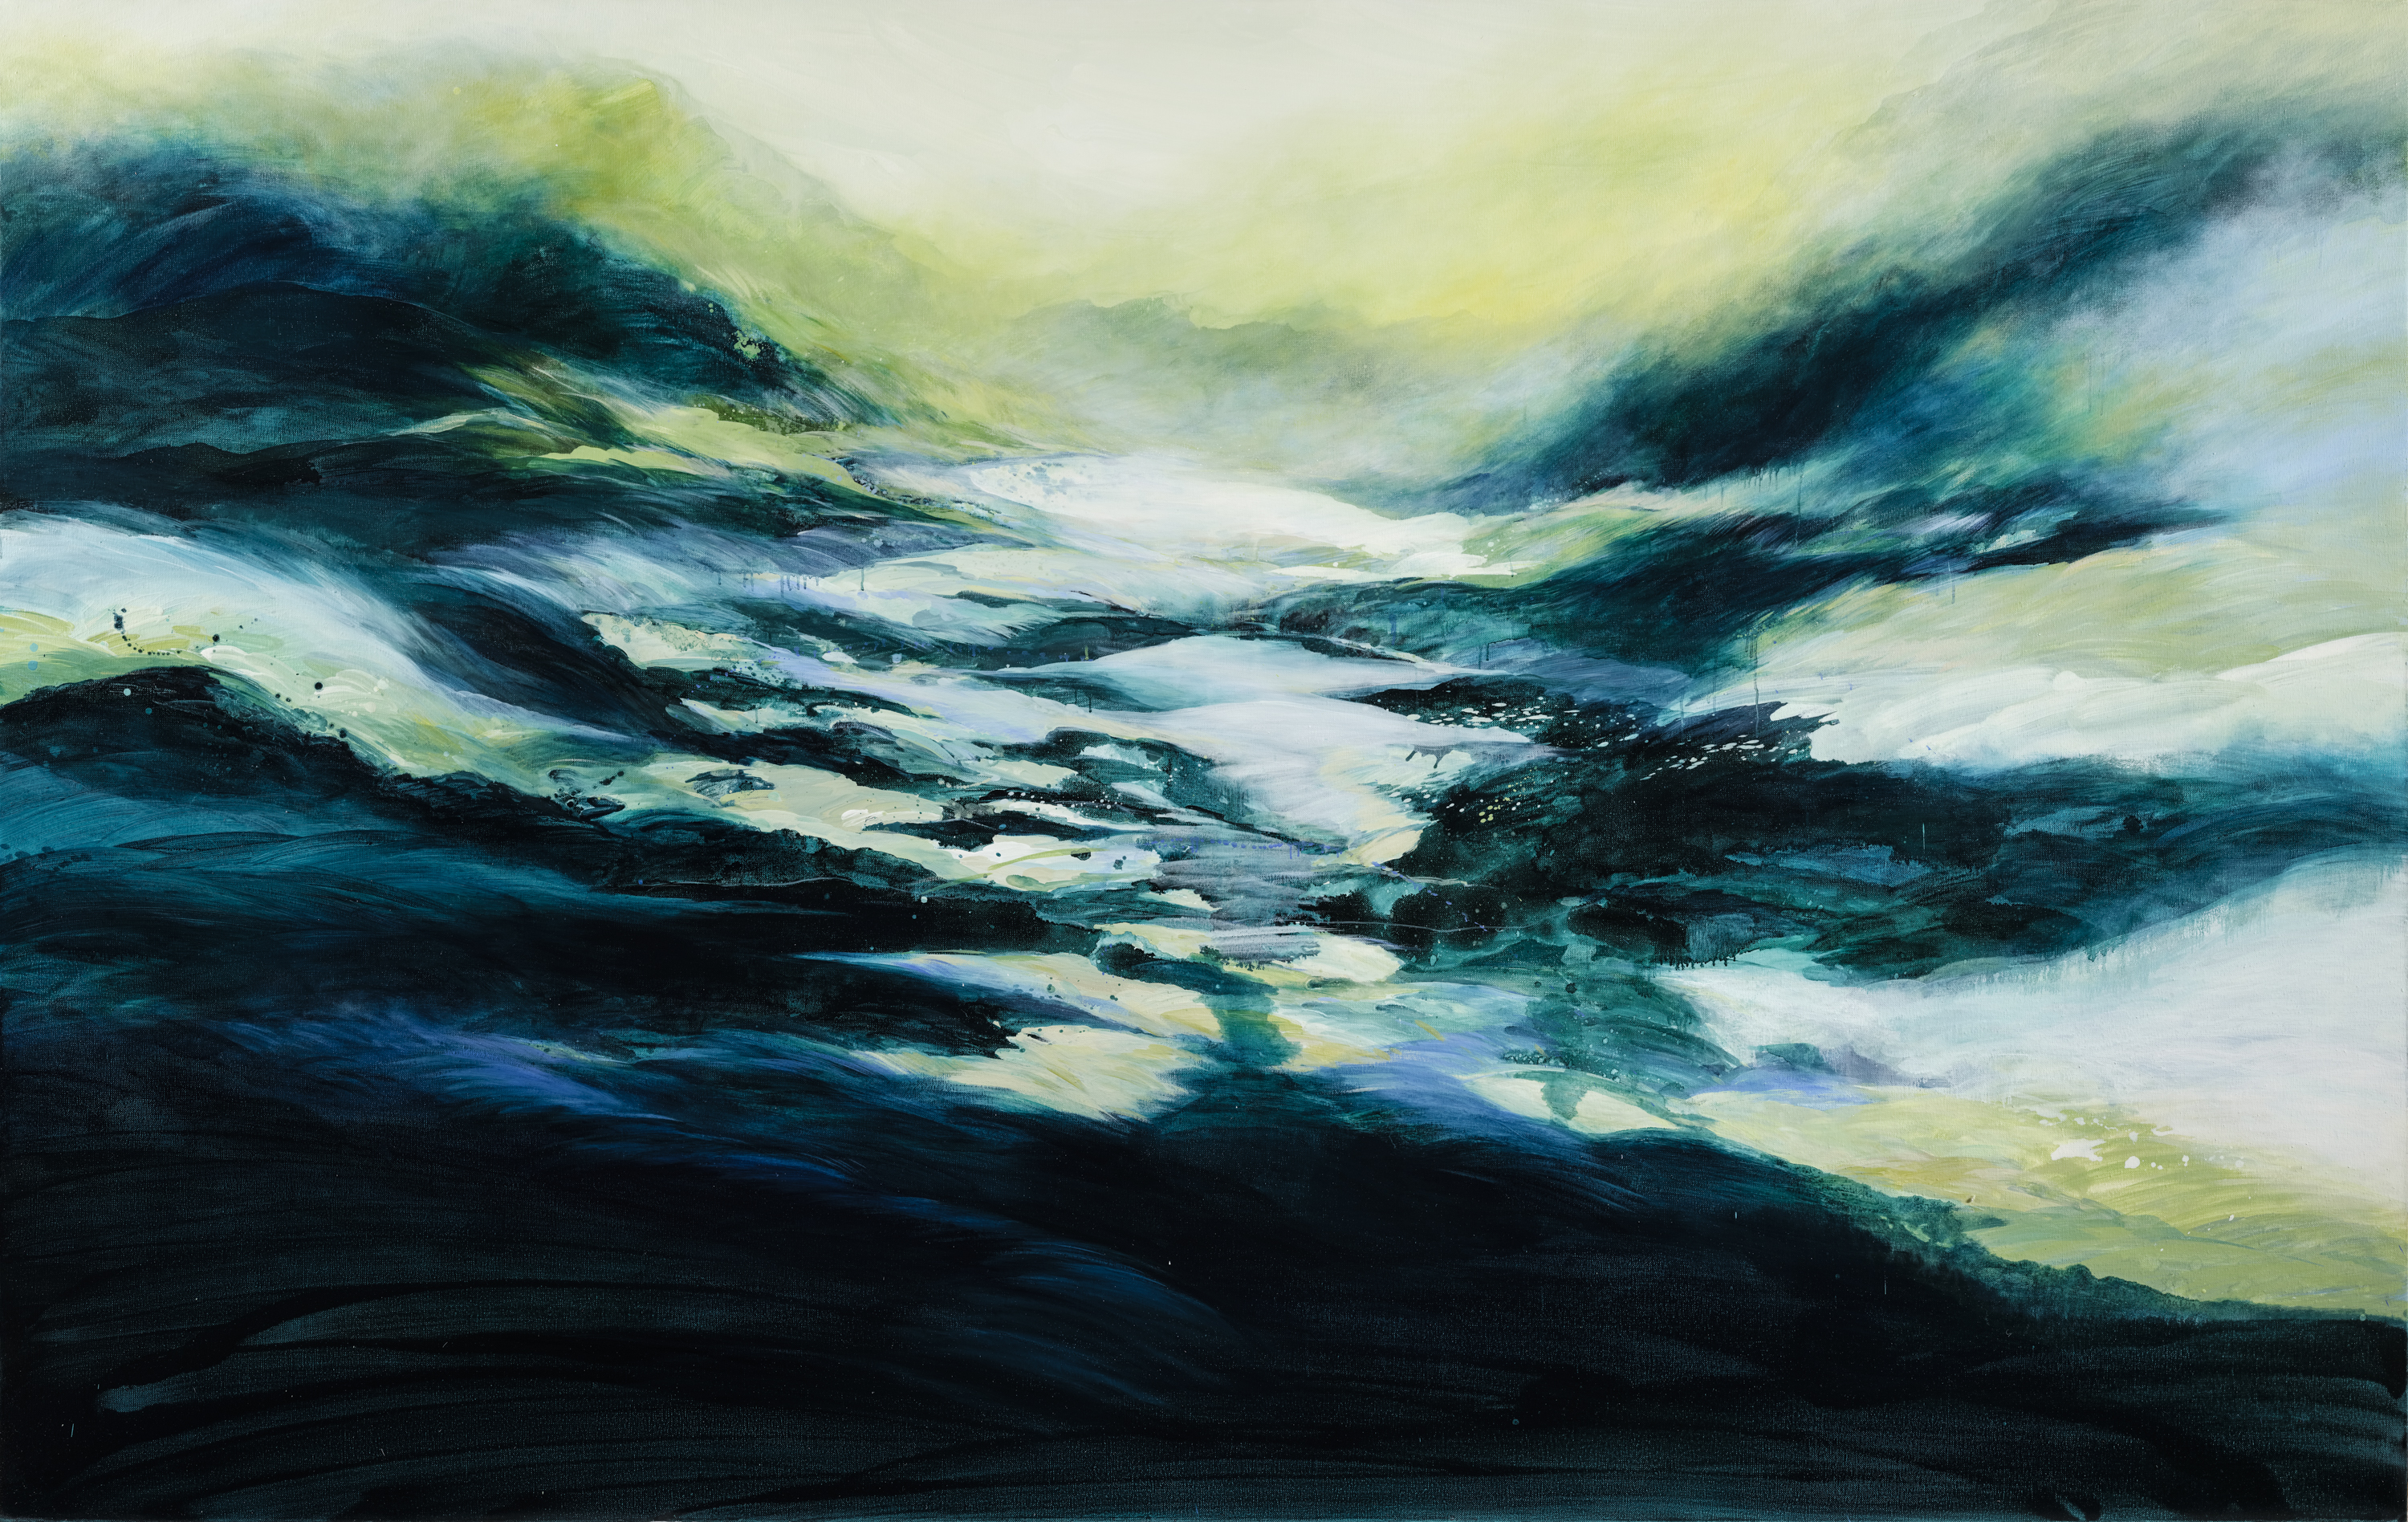 Whisper of the Mountains_2020_190x300cm_Oil on canvas.jpg